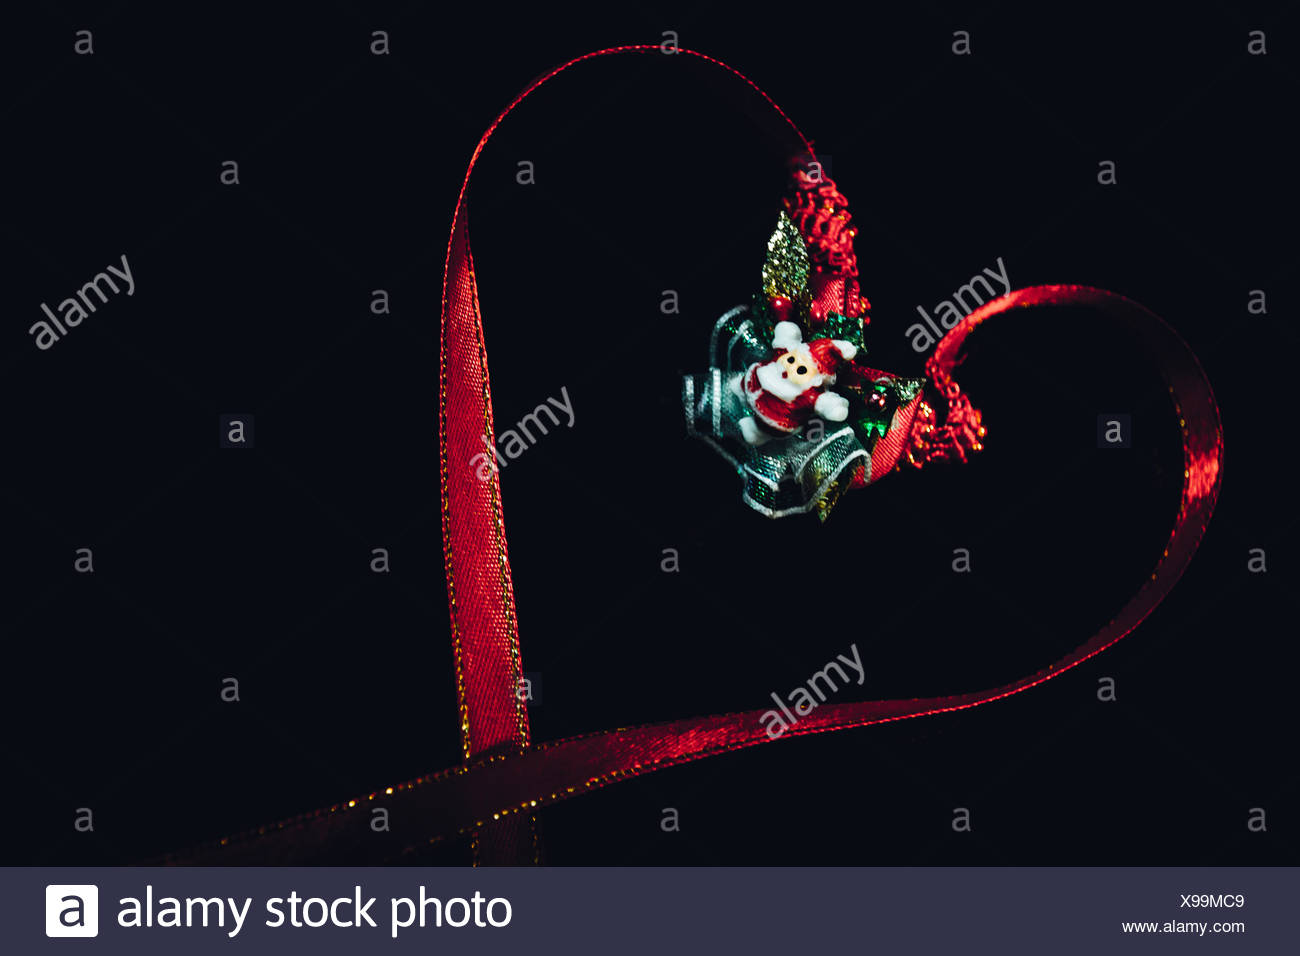 Close-Up Of Hear Shaped Christmas Decoration Against Black Background - Stock Image